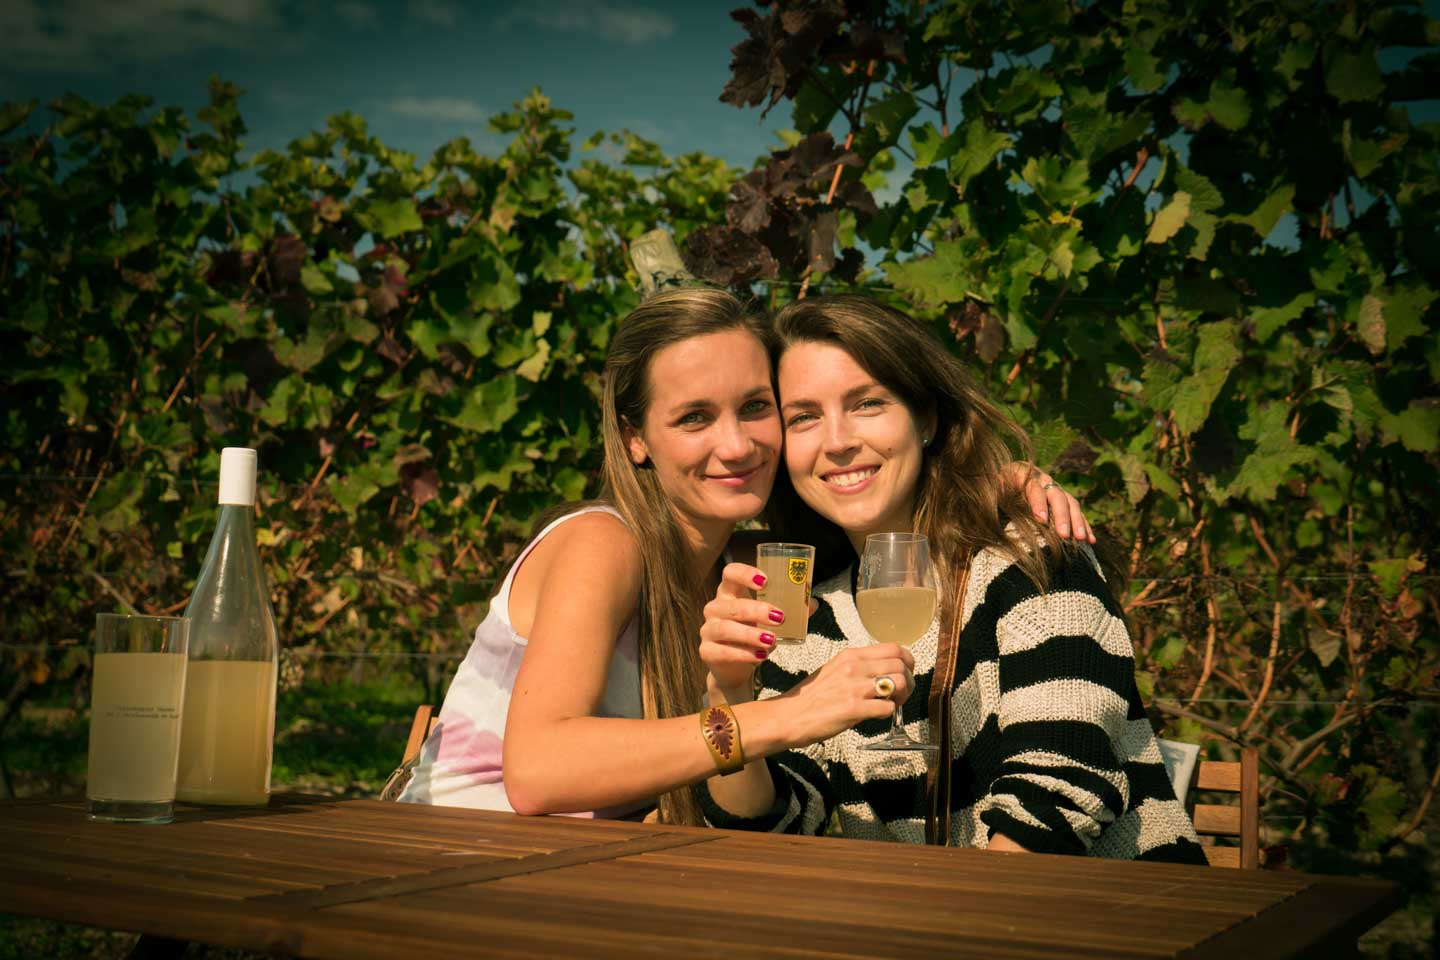 Anita Kisiala and Lisa Gerhard at the Oppenheimer Schlemmerwanderung 2015 Gourmet walking tour